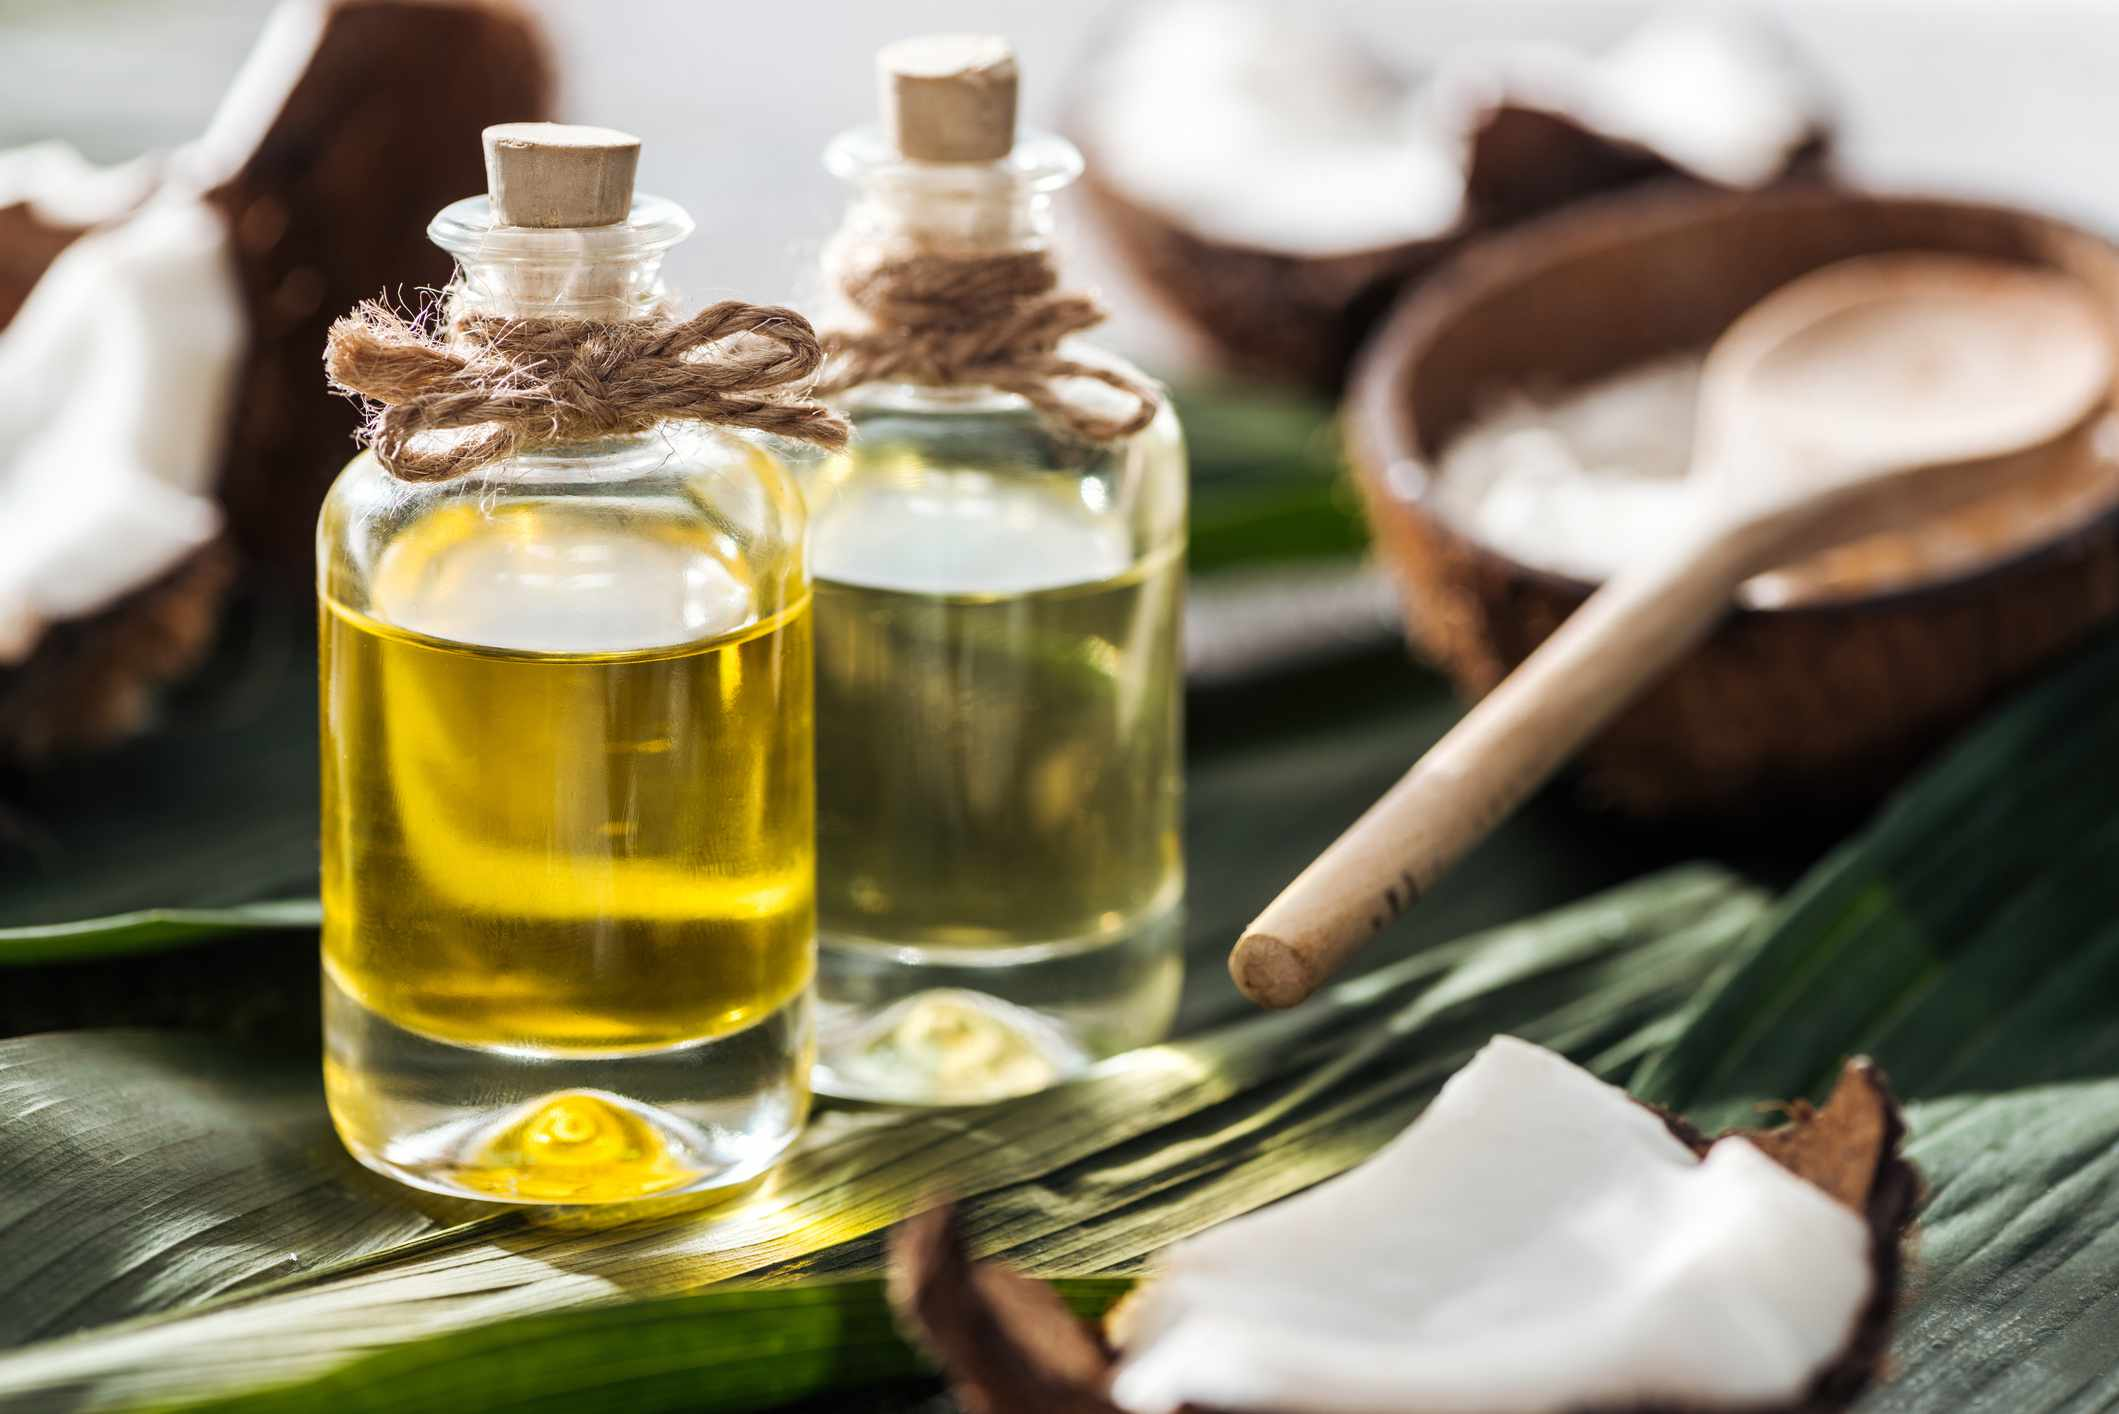 Best Oils for Skin: Types, Benefits, and Risks